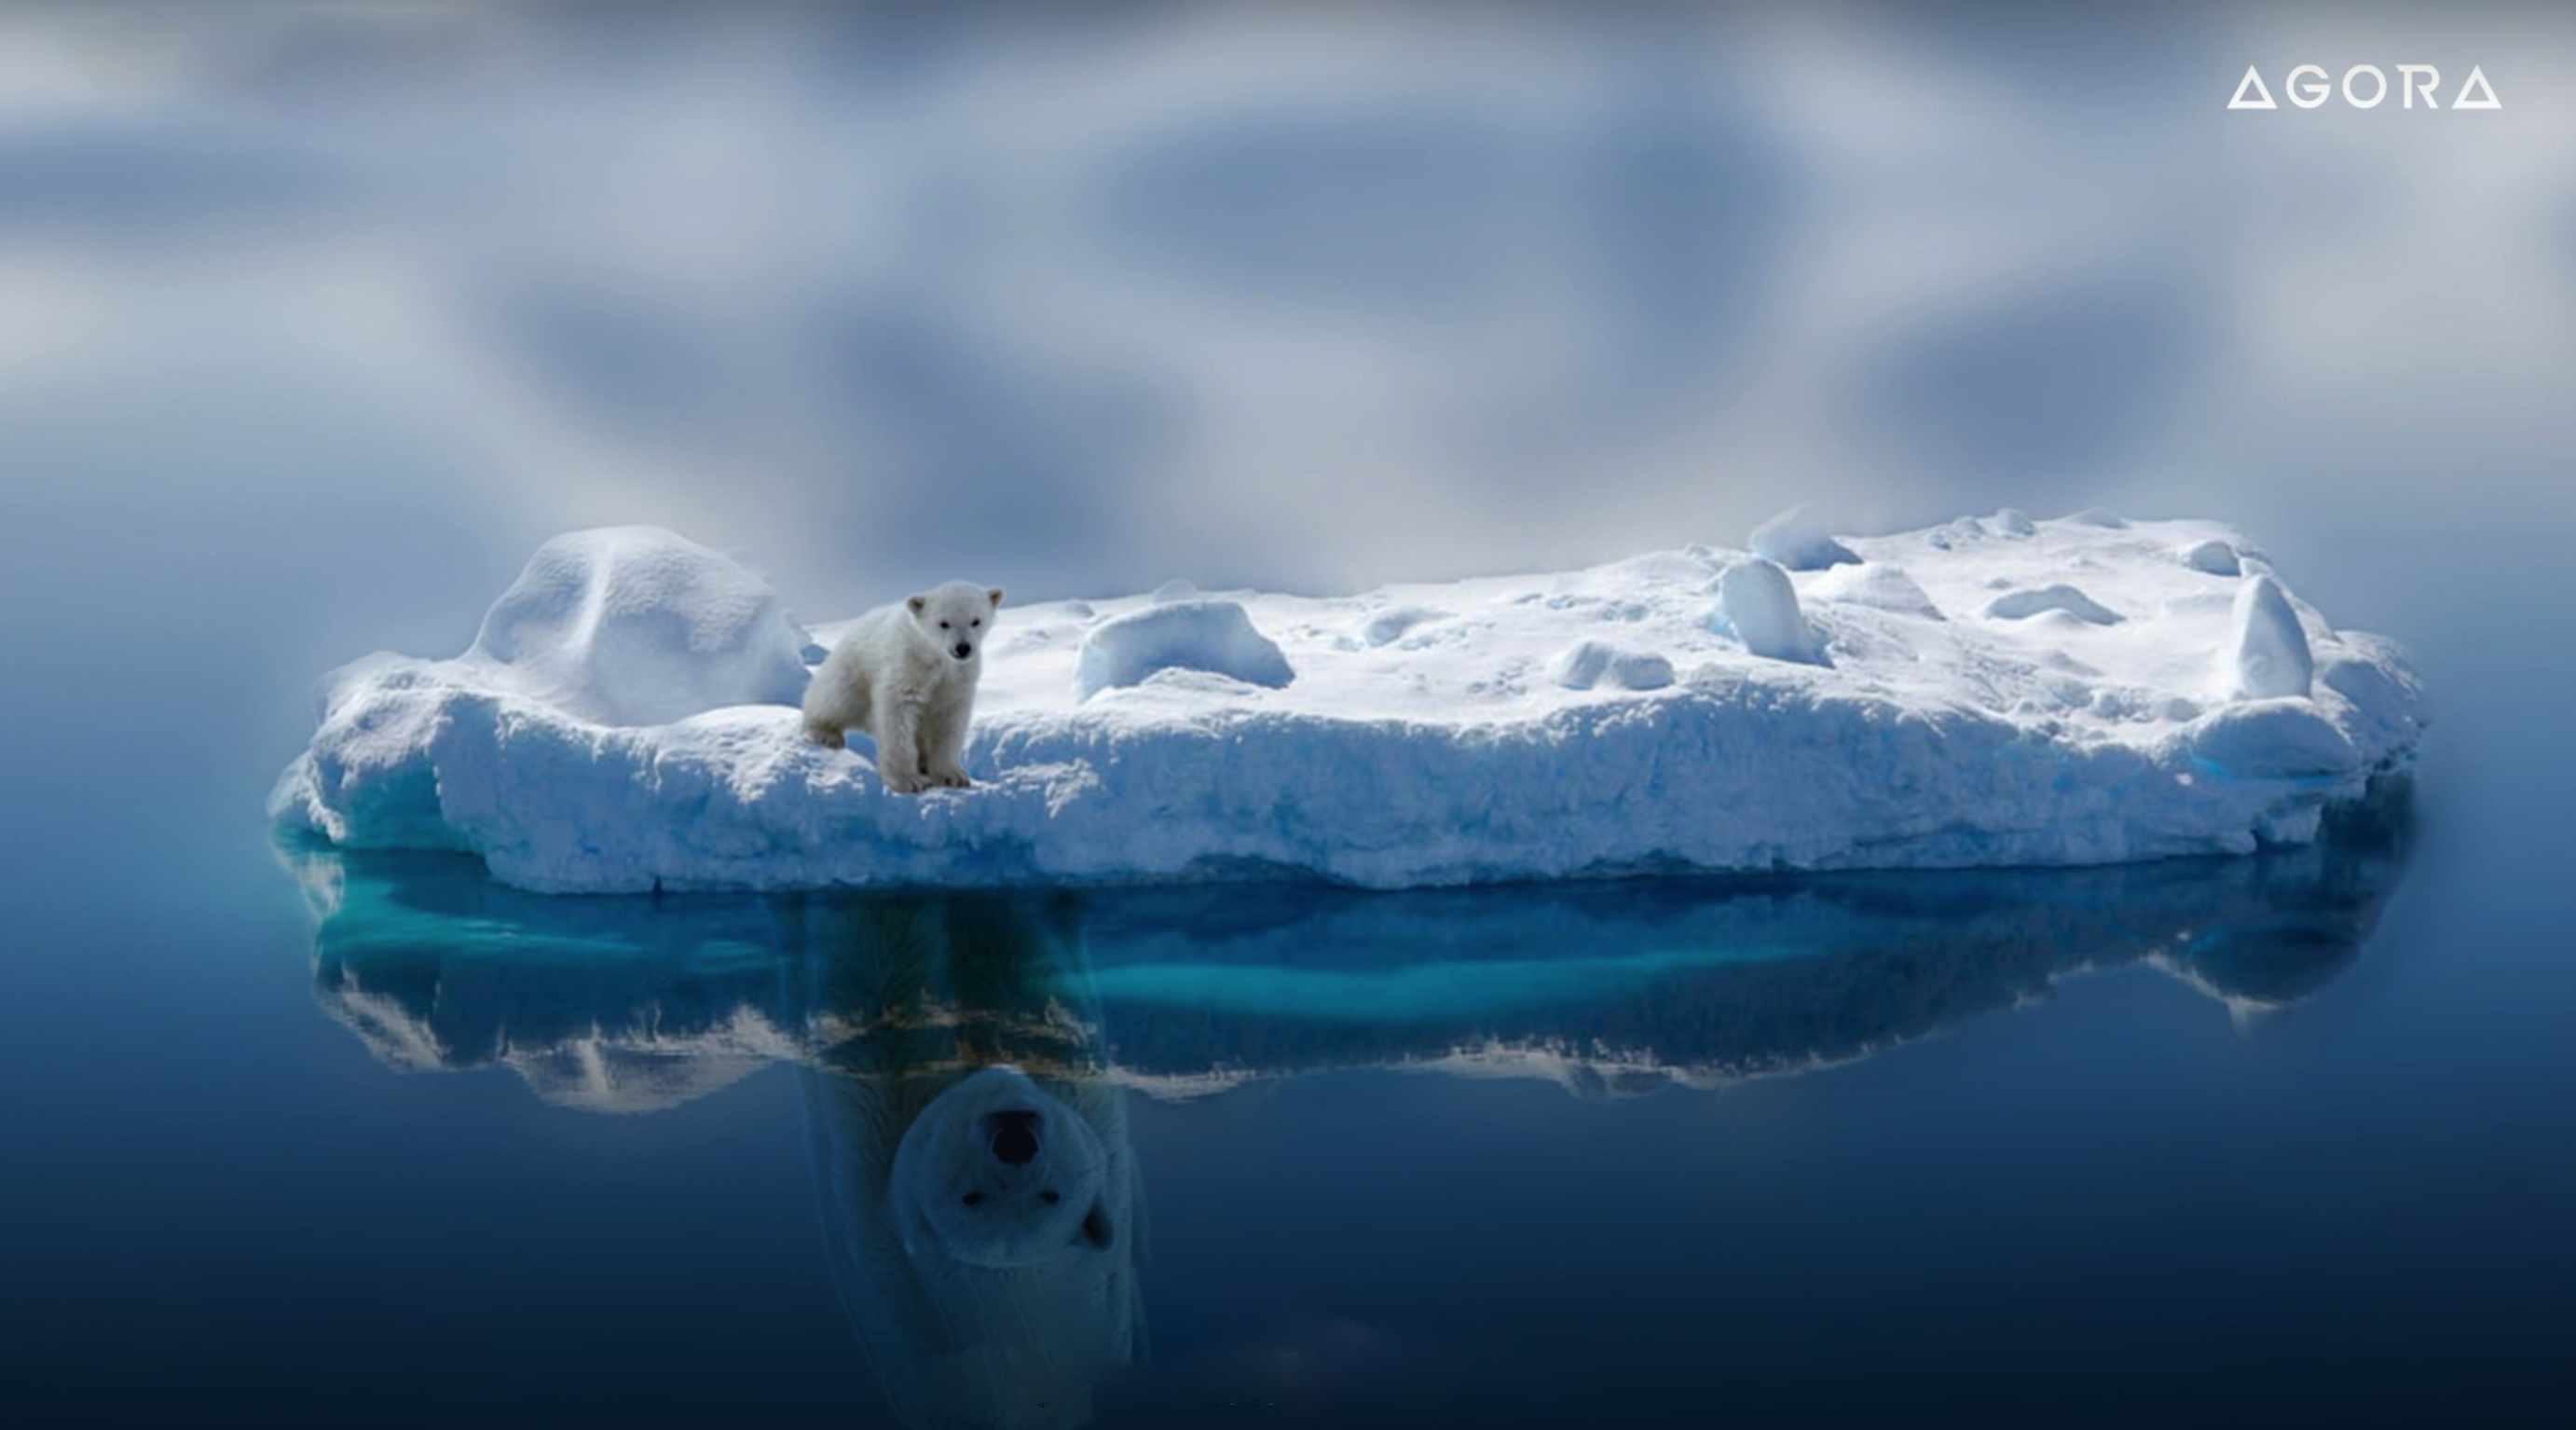 agora-images-global-warming-through-the-eyes-of-paal-uglefisk